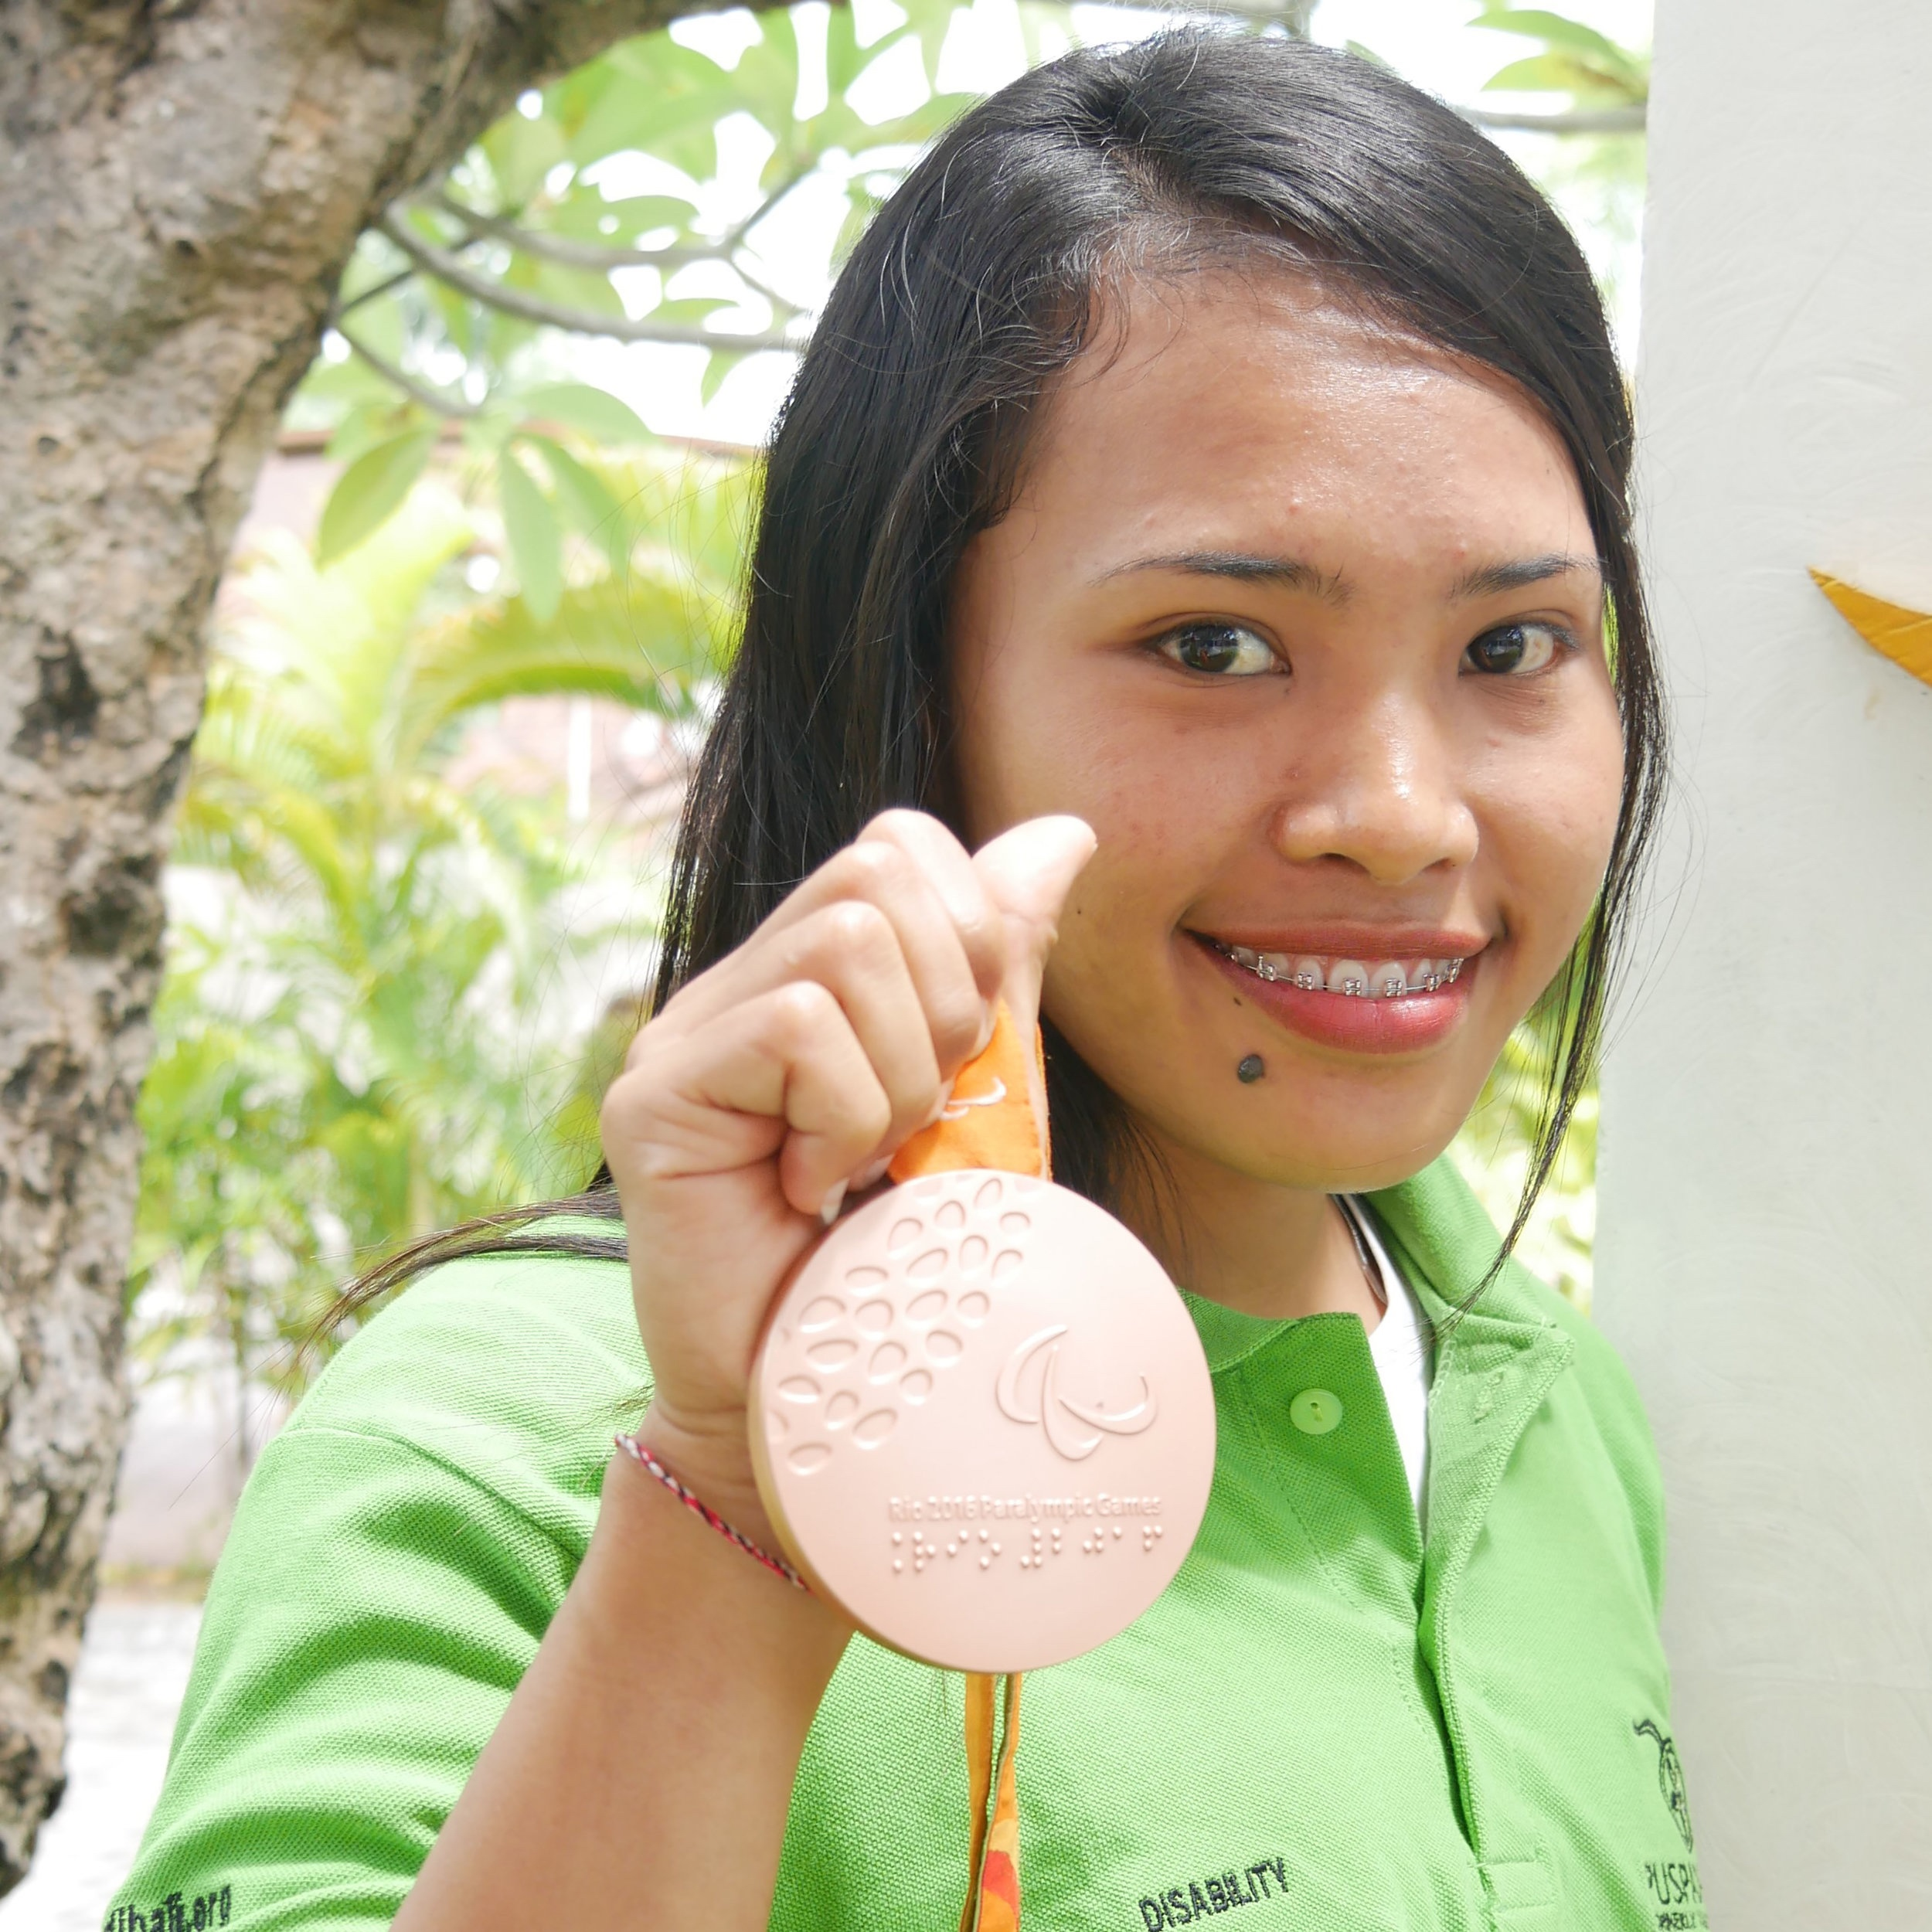 Widiaish+proudly+holding+her+2016+Rio+Paralympics+medal-+%281%29.jpg